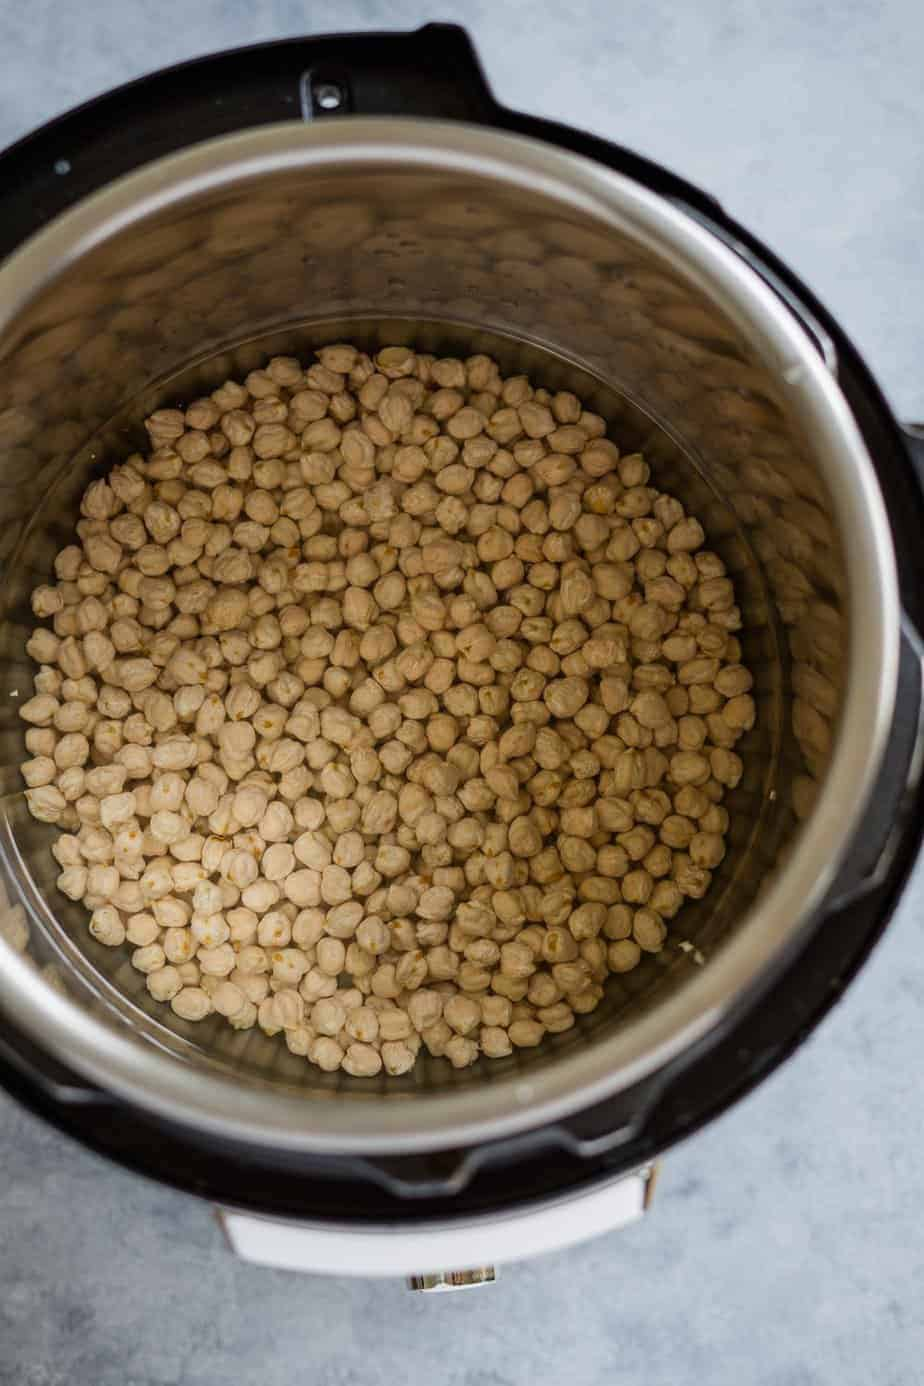 dried chickpeas with water inside the instant pot to pressure cook and make homemade hummus.